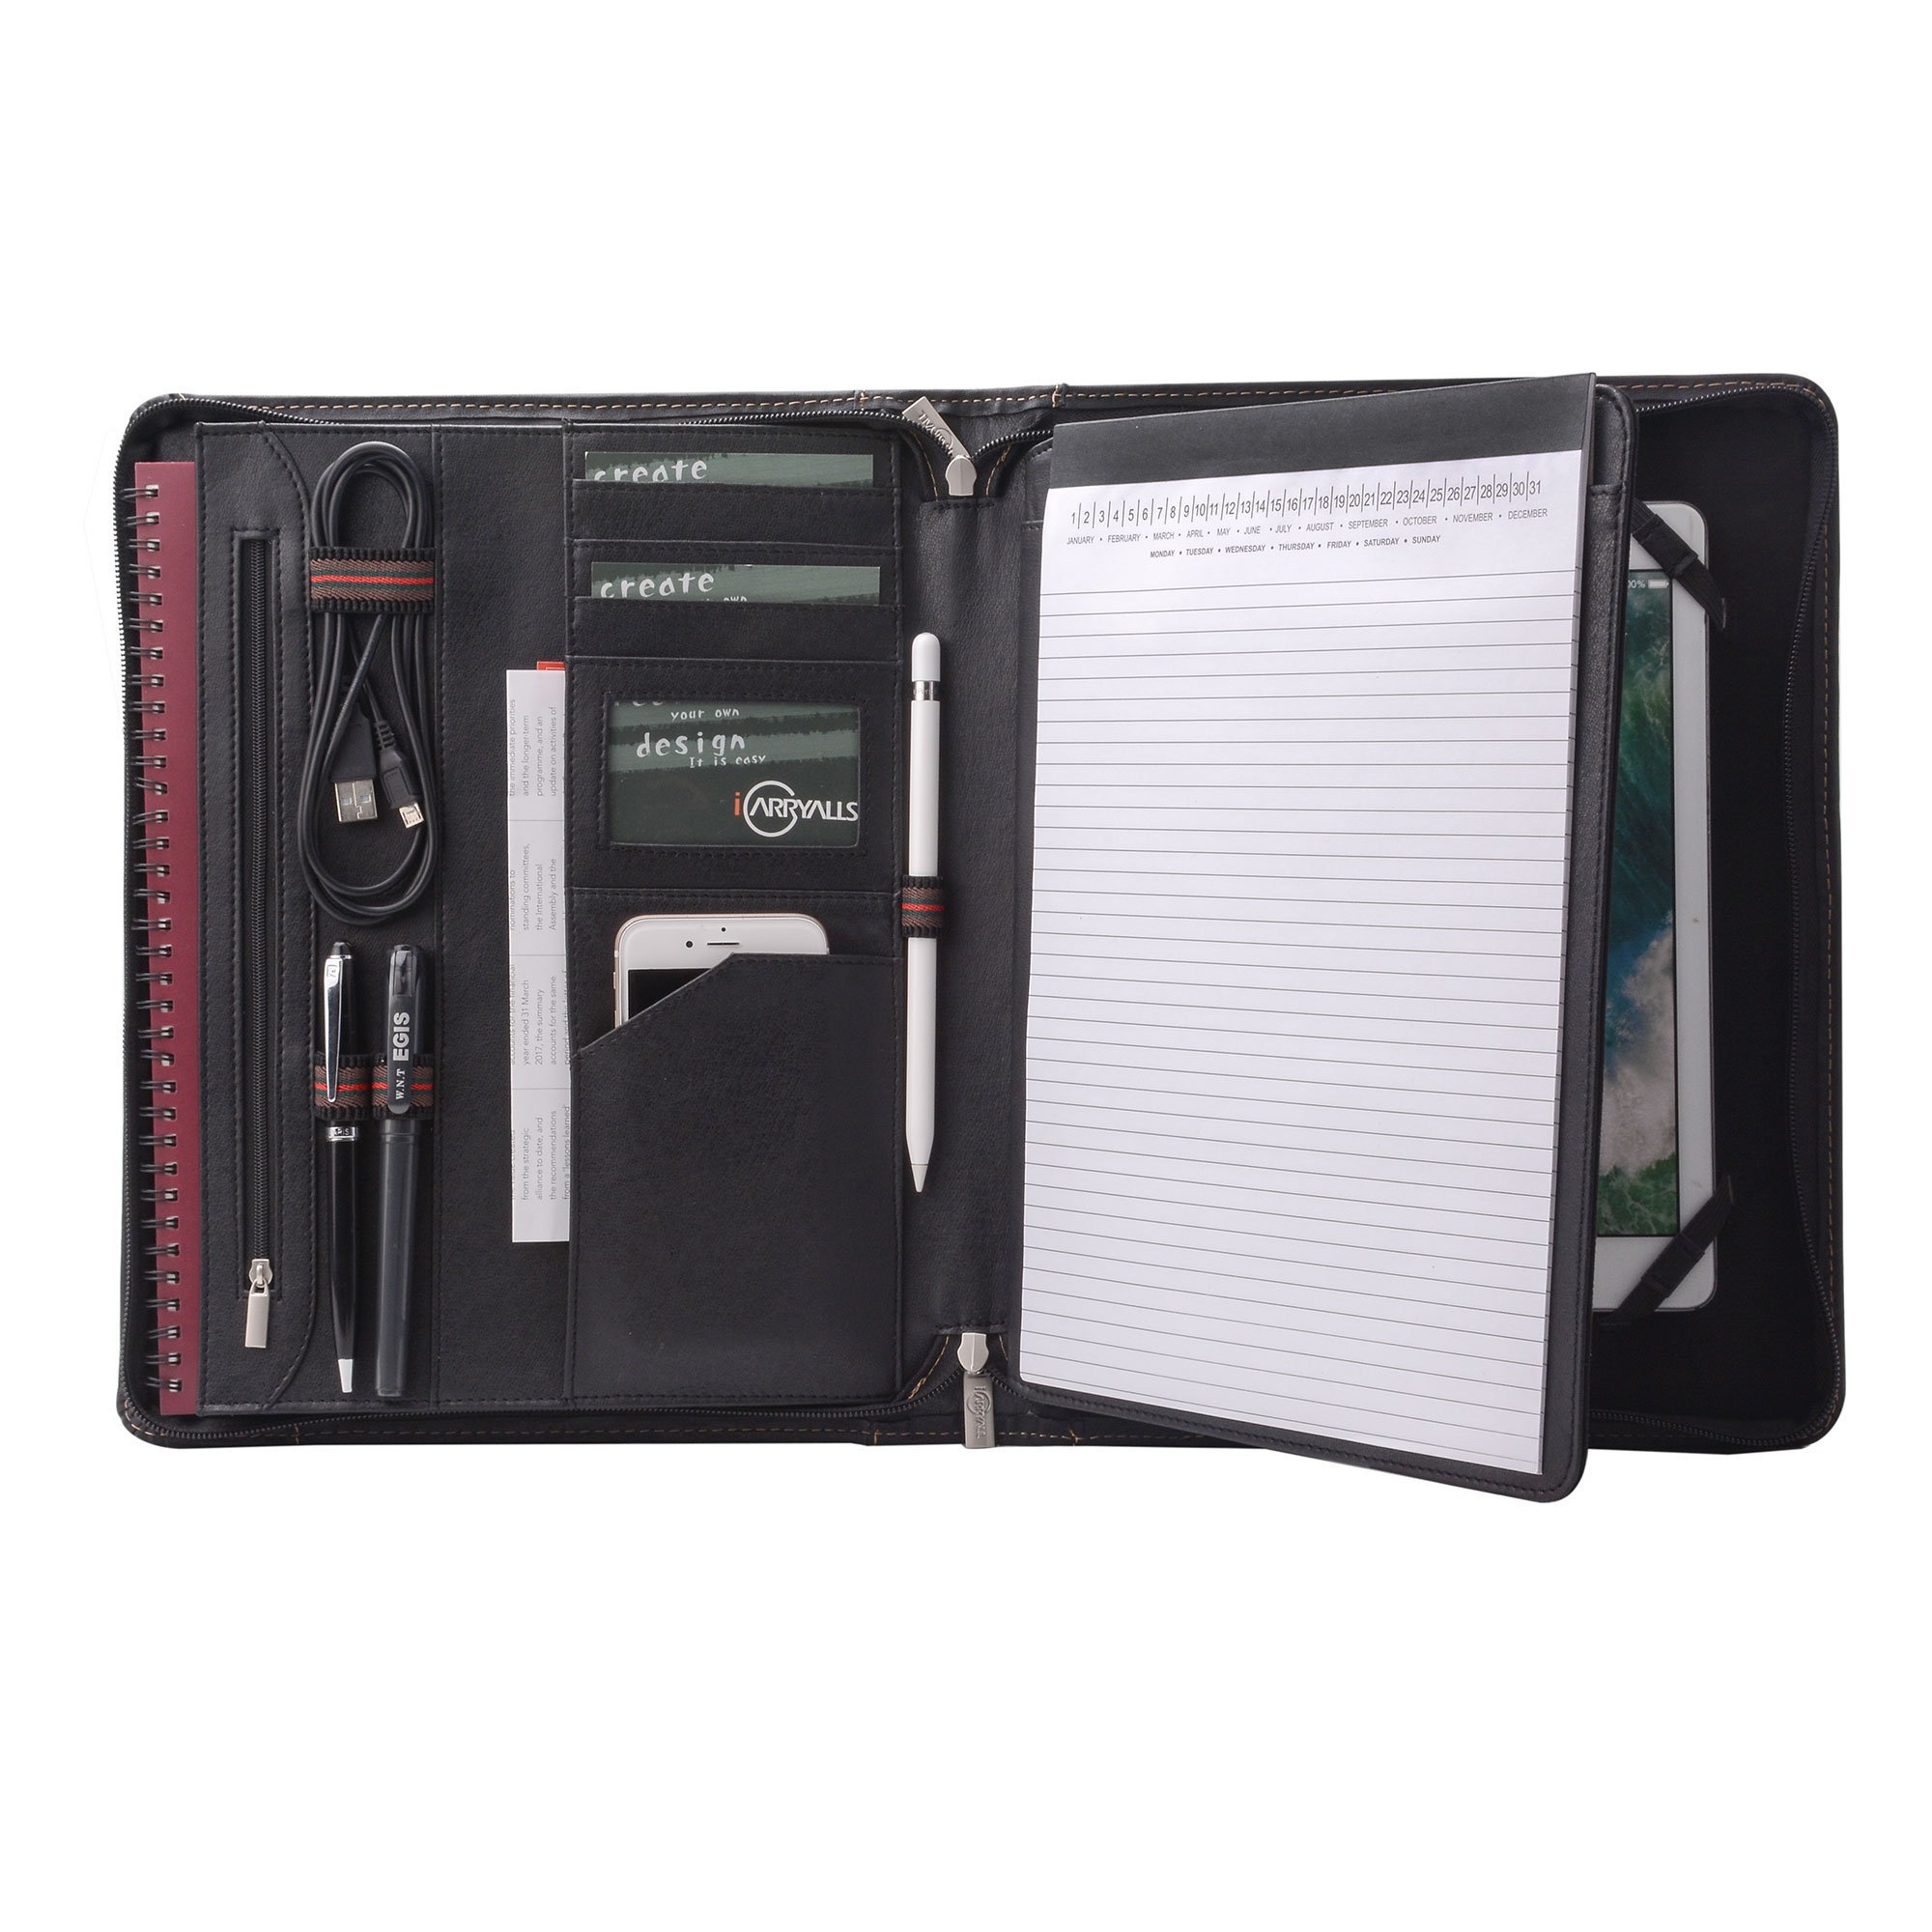 iCarryAlls Leather Padfolio with Zipper, Organizer Padfolio Case for 10.5 inch iPad Pro, A4 Portfolio for Notepad